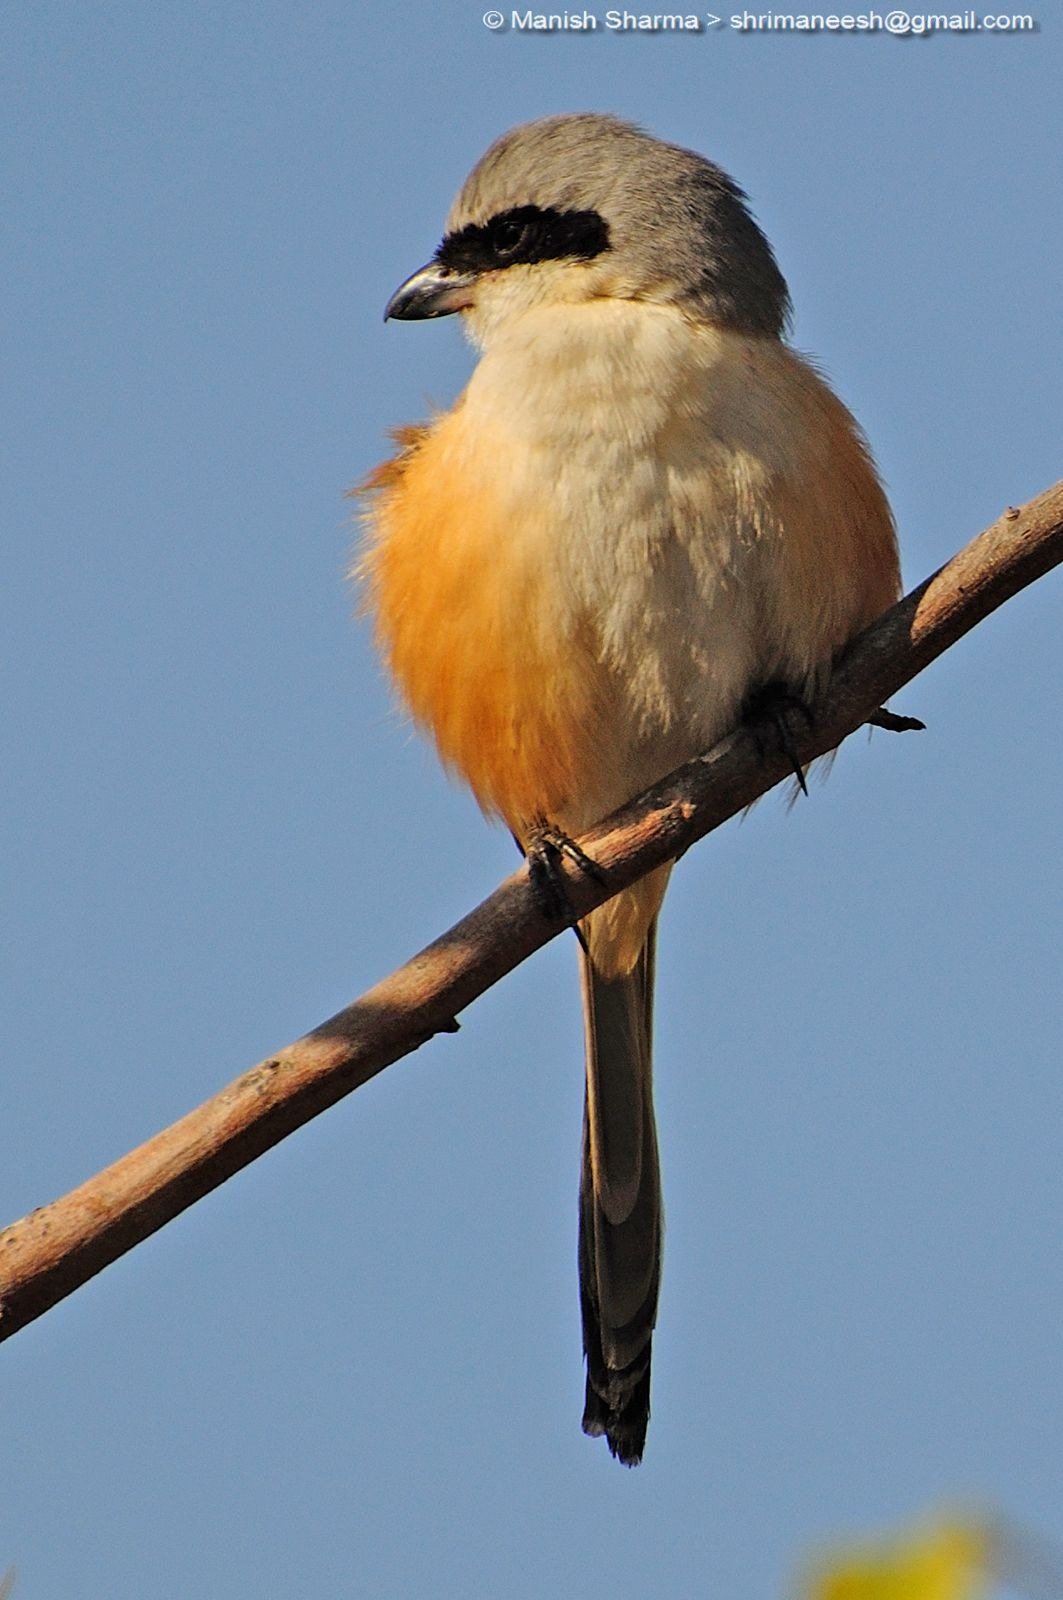 Long-tailed shrike...Scientific name: Lanius schach by Maneesh Sharma